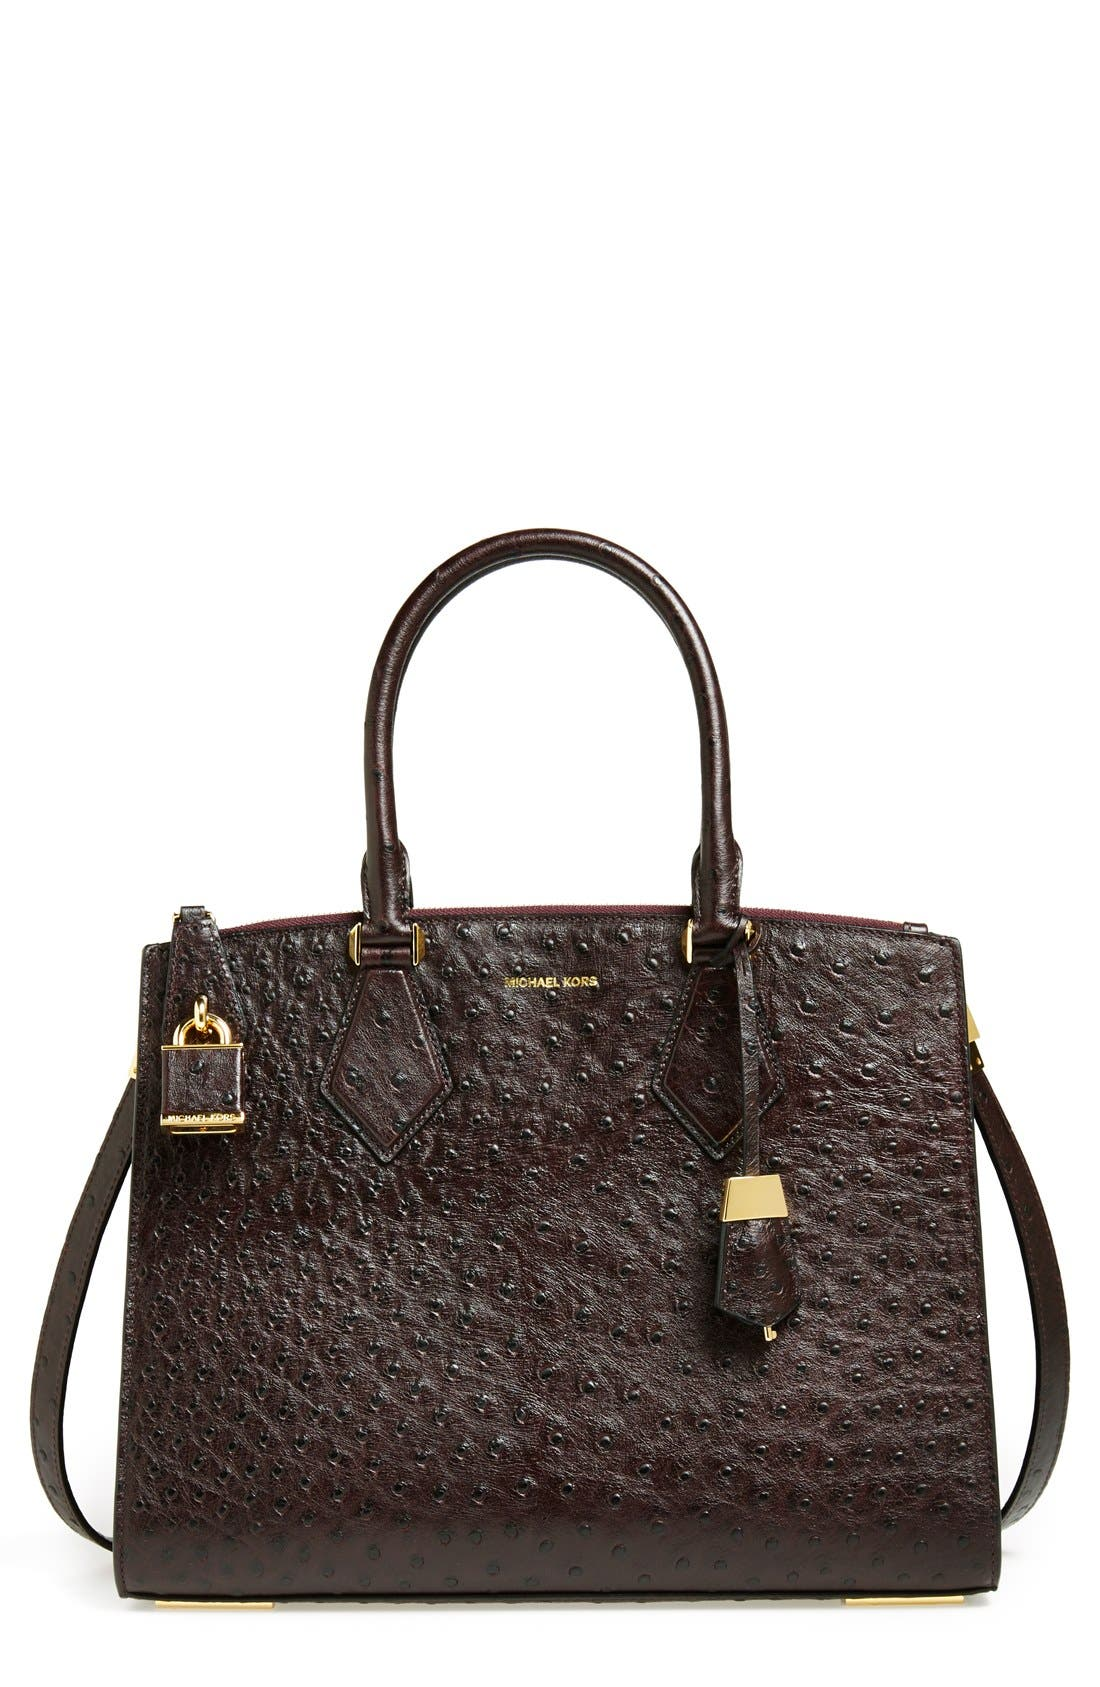 Alternate Image 1 Selected - Michael Kors 'Large Casey' Leather Satchel